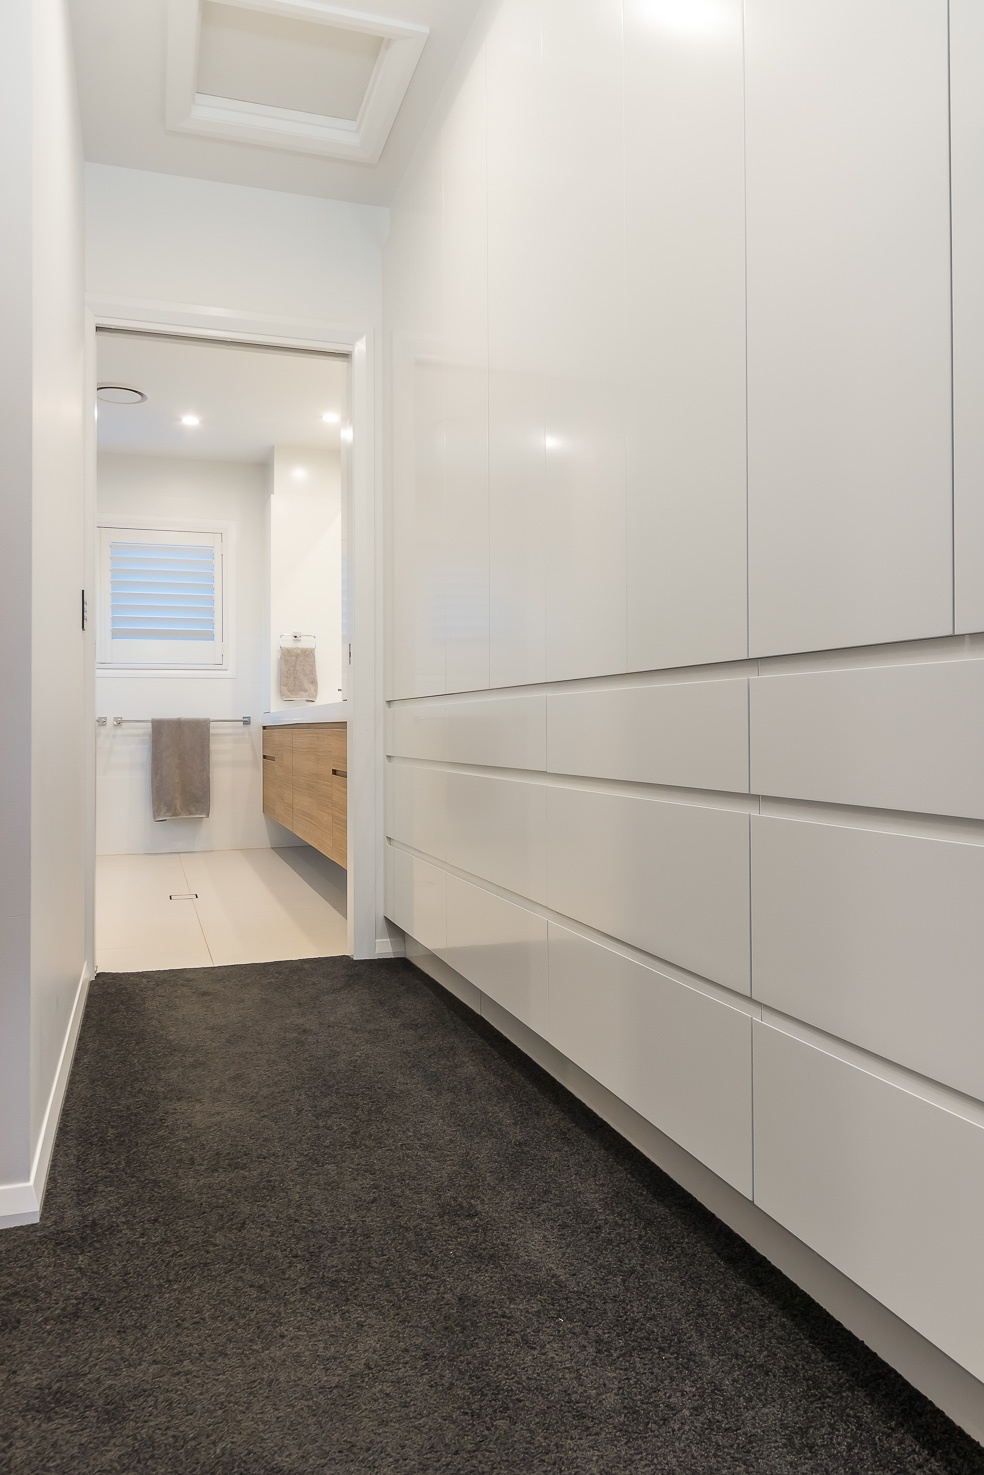 Brisbane Manly contemporary home by evermore looking into the master ensuite